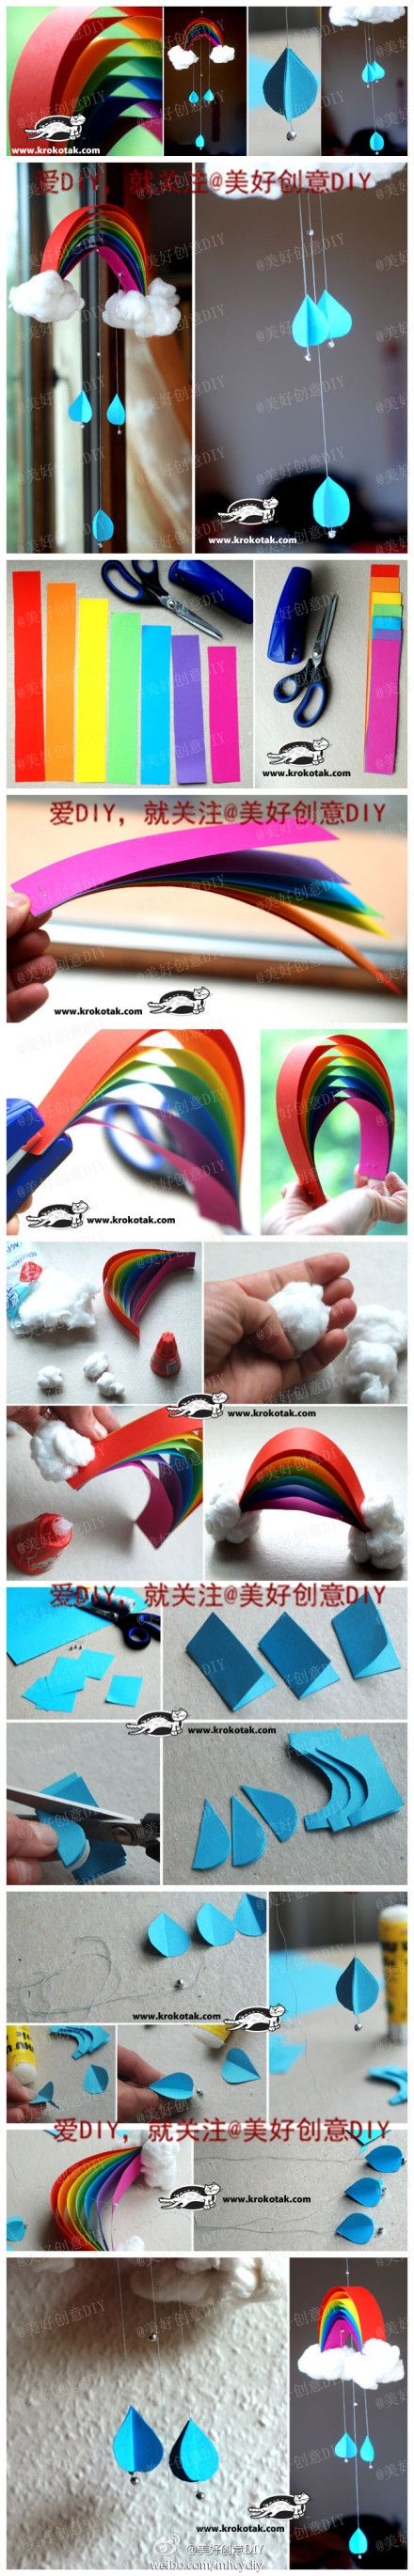 How to make Beautiful Rainbow Mobile step by step DIY tutorial instructions